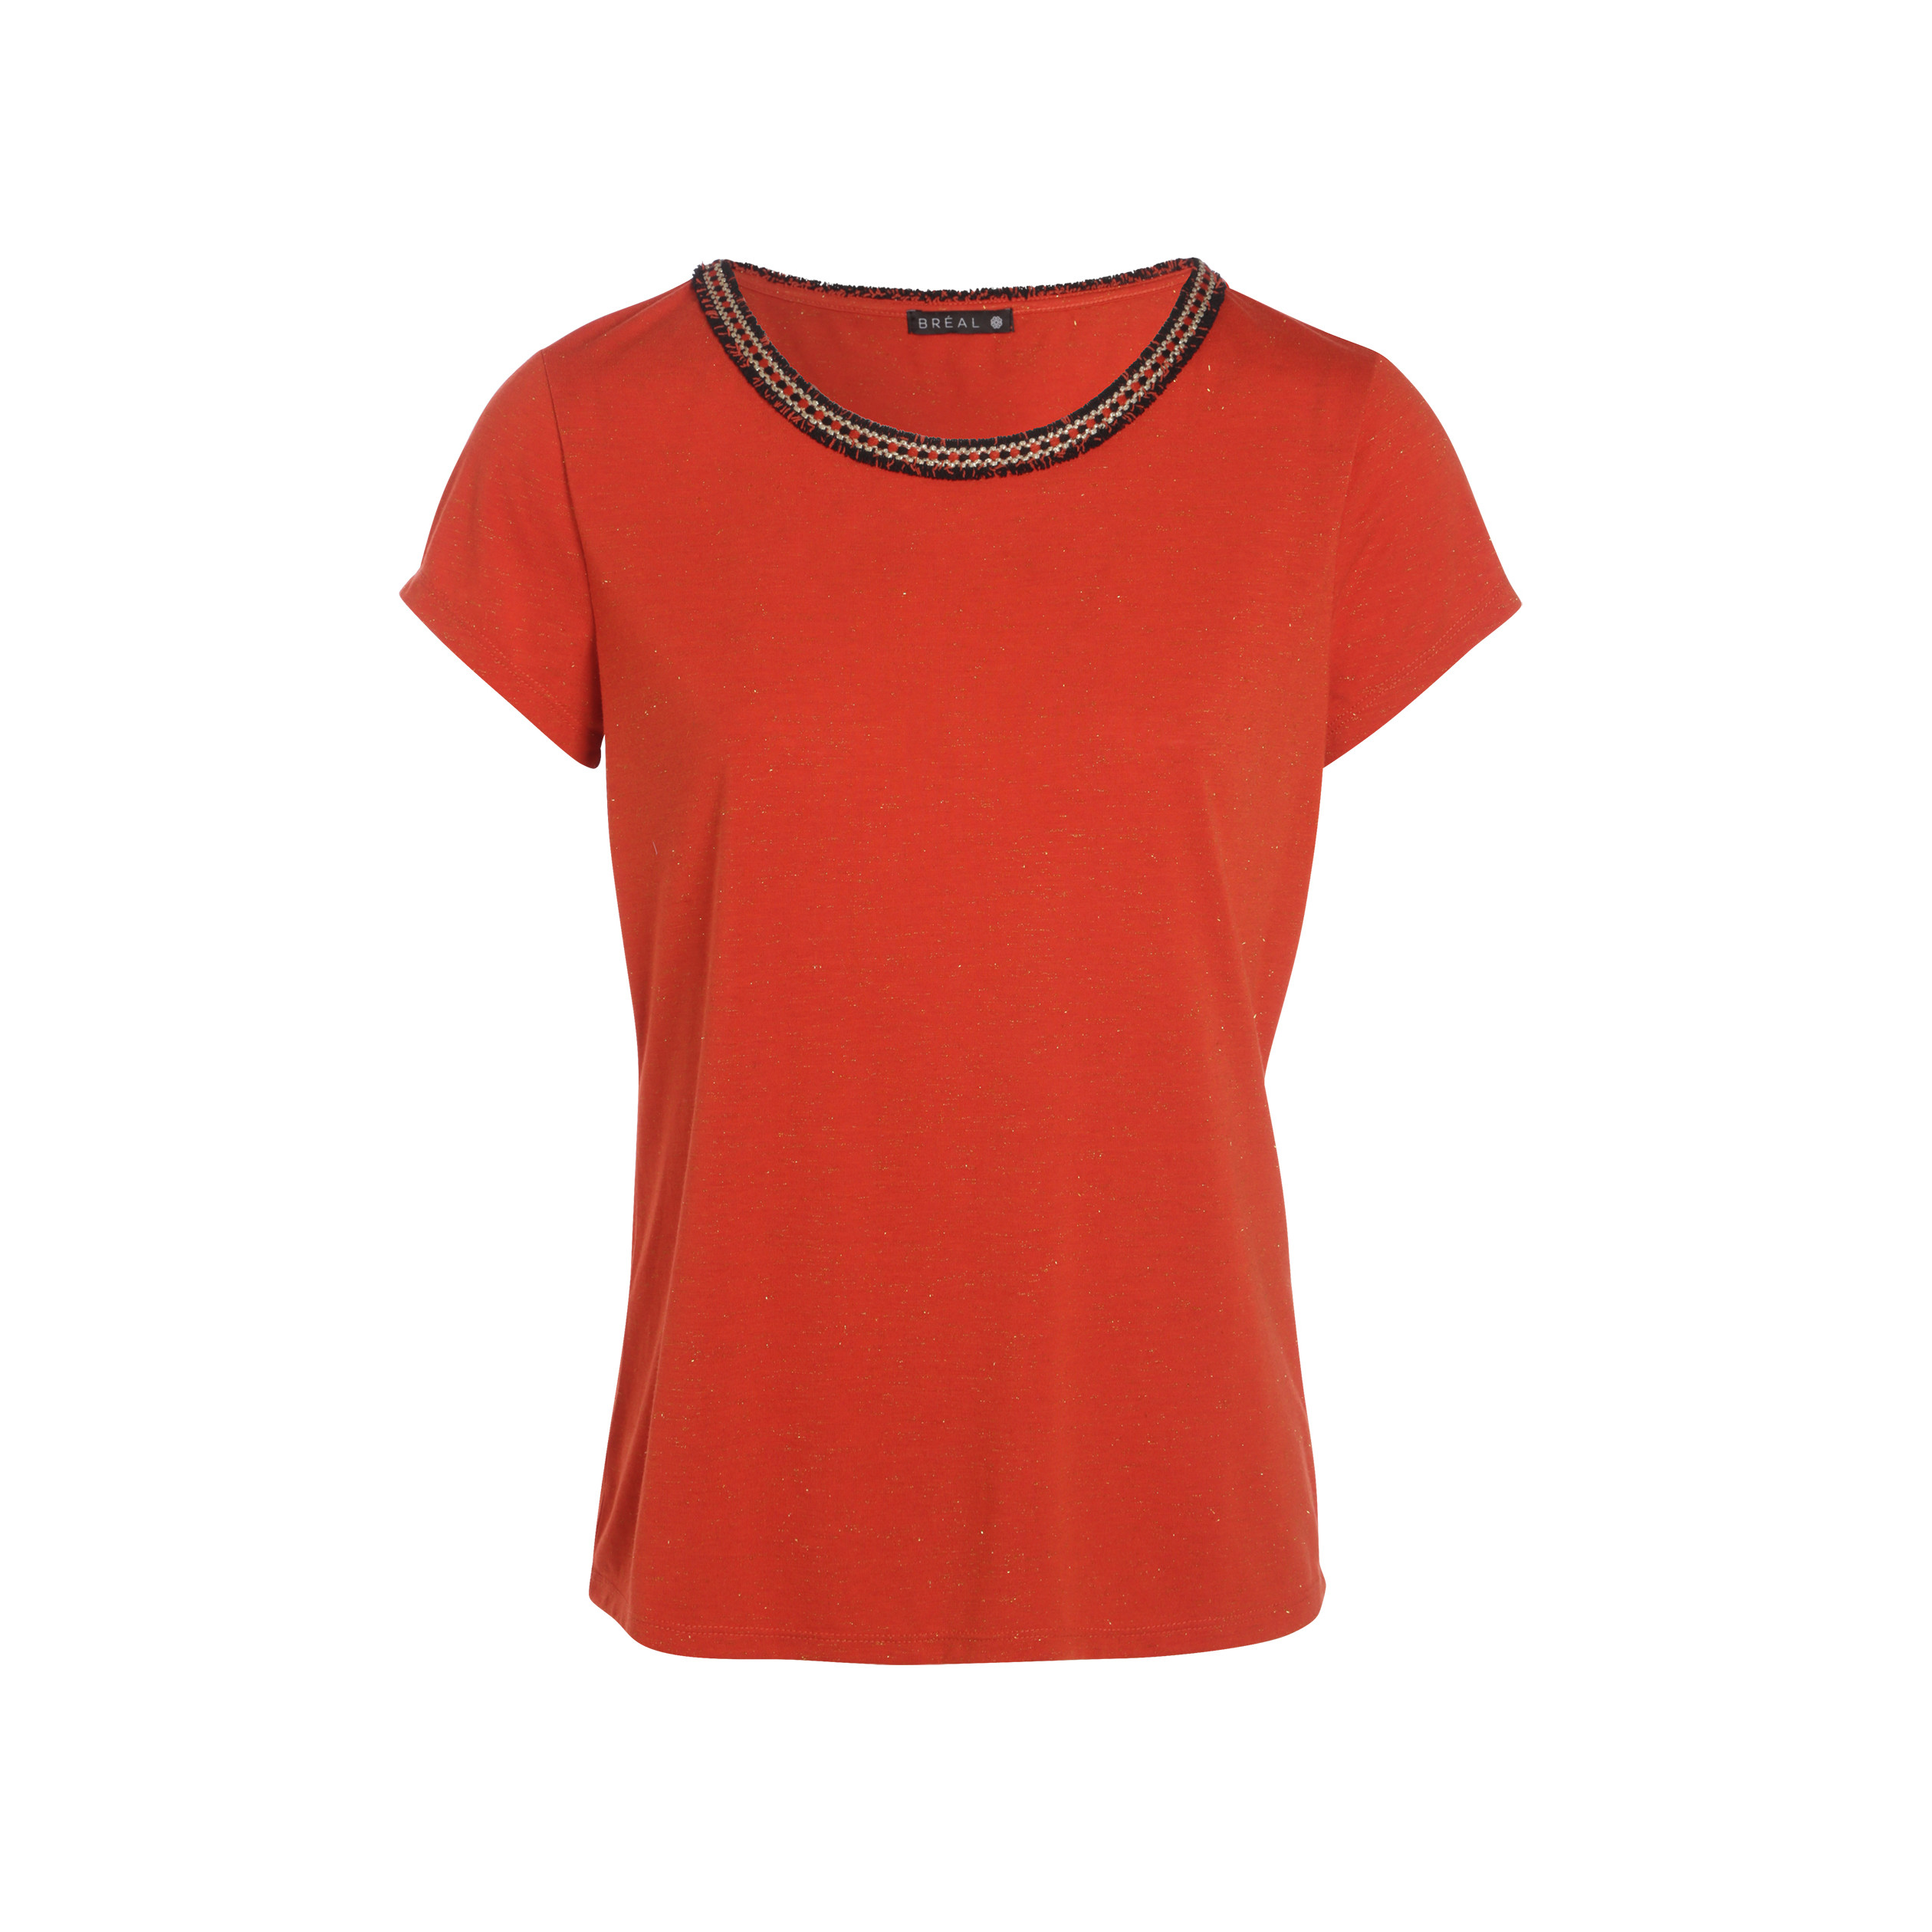 Shirt Angel Femme Manches Rouge Tee Courtes Corail Hair XPZiTwOku